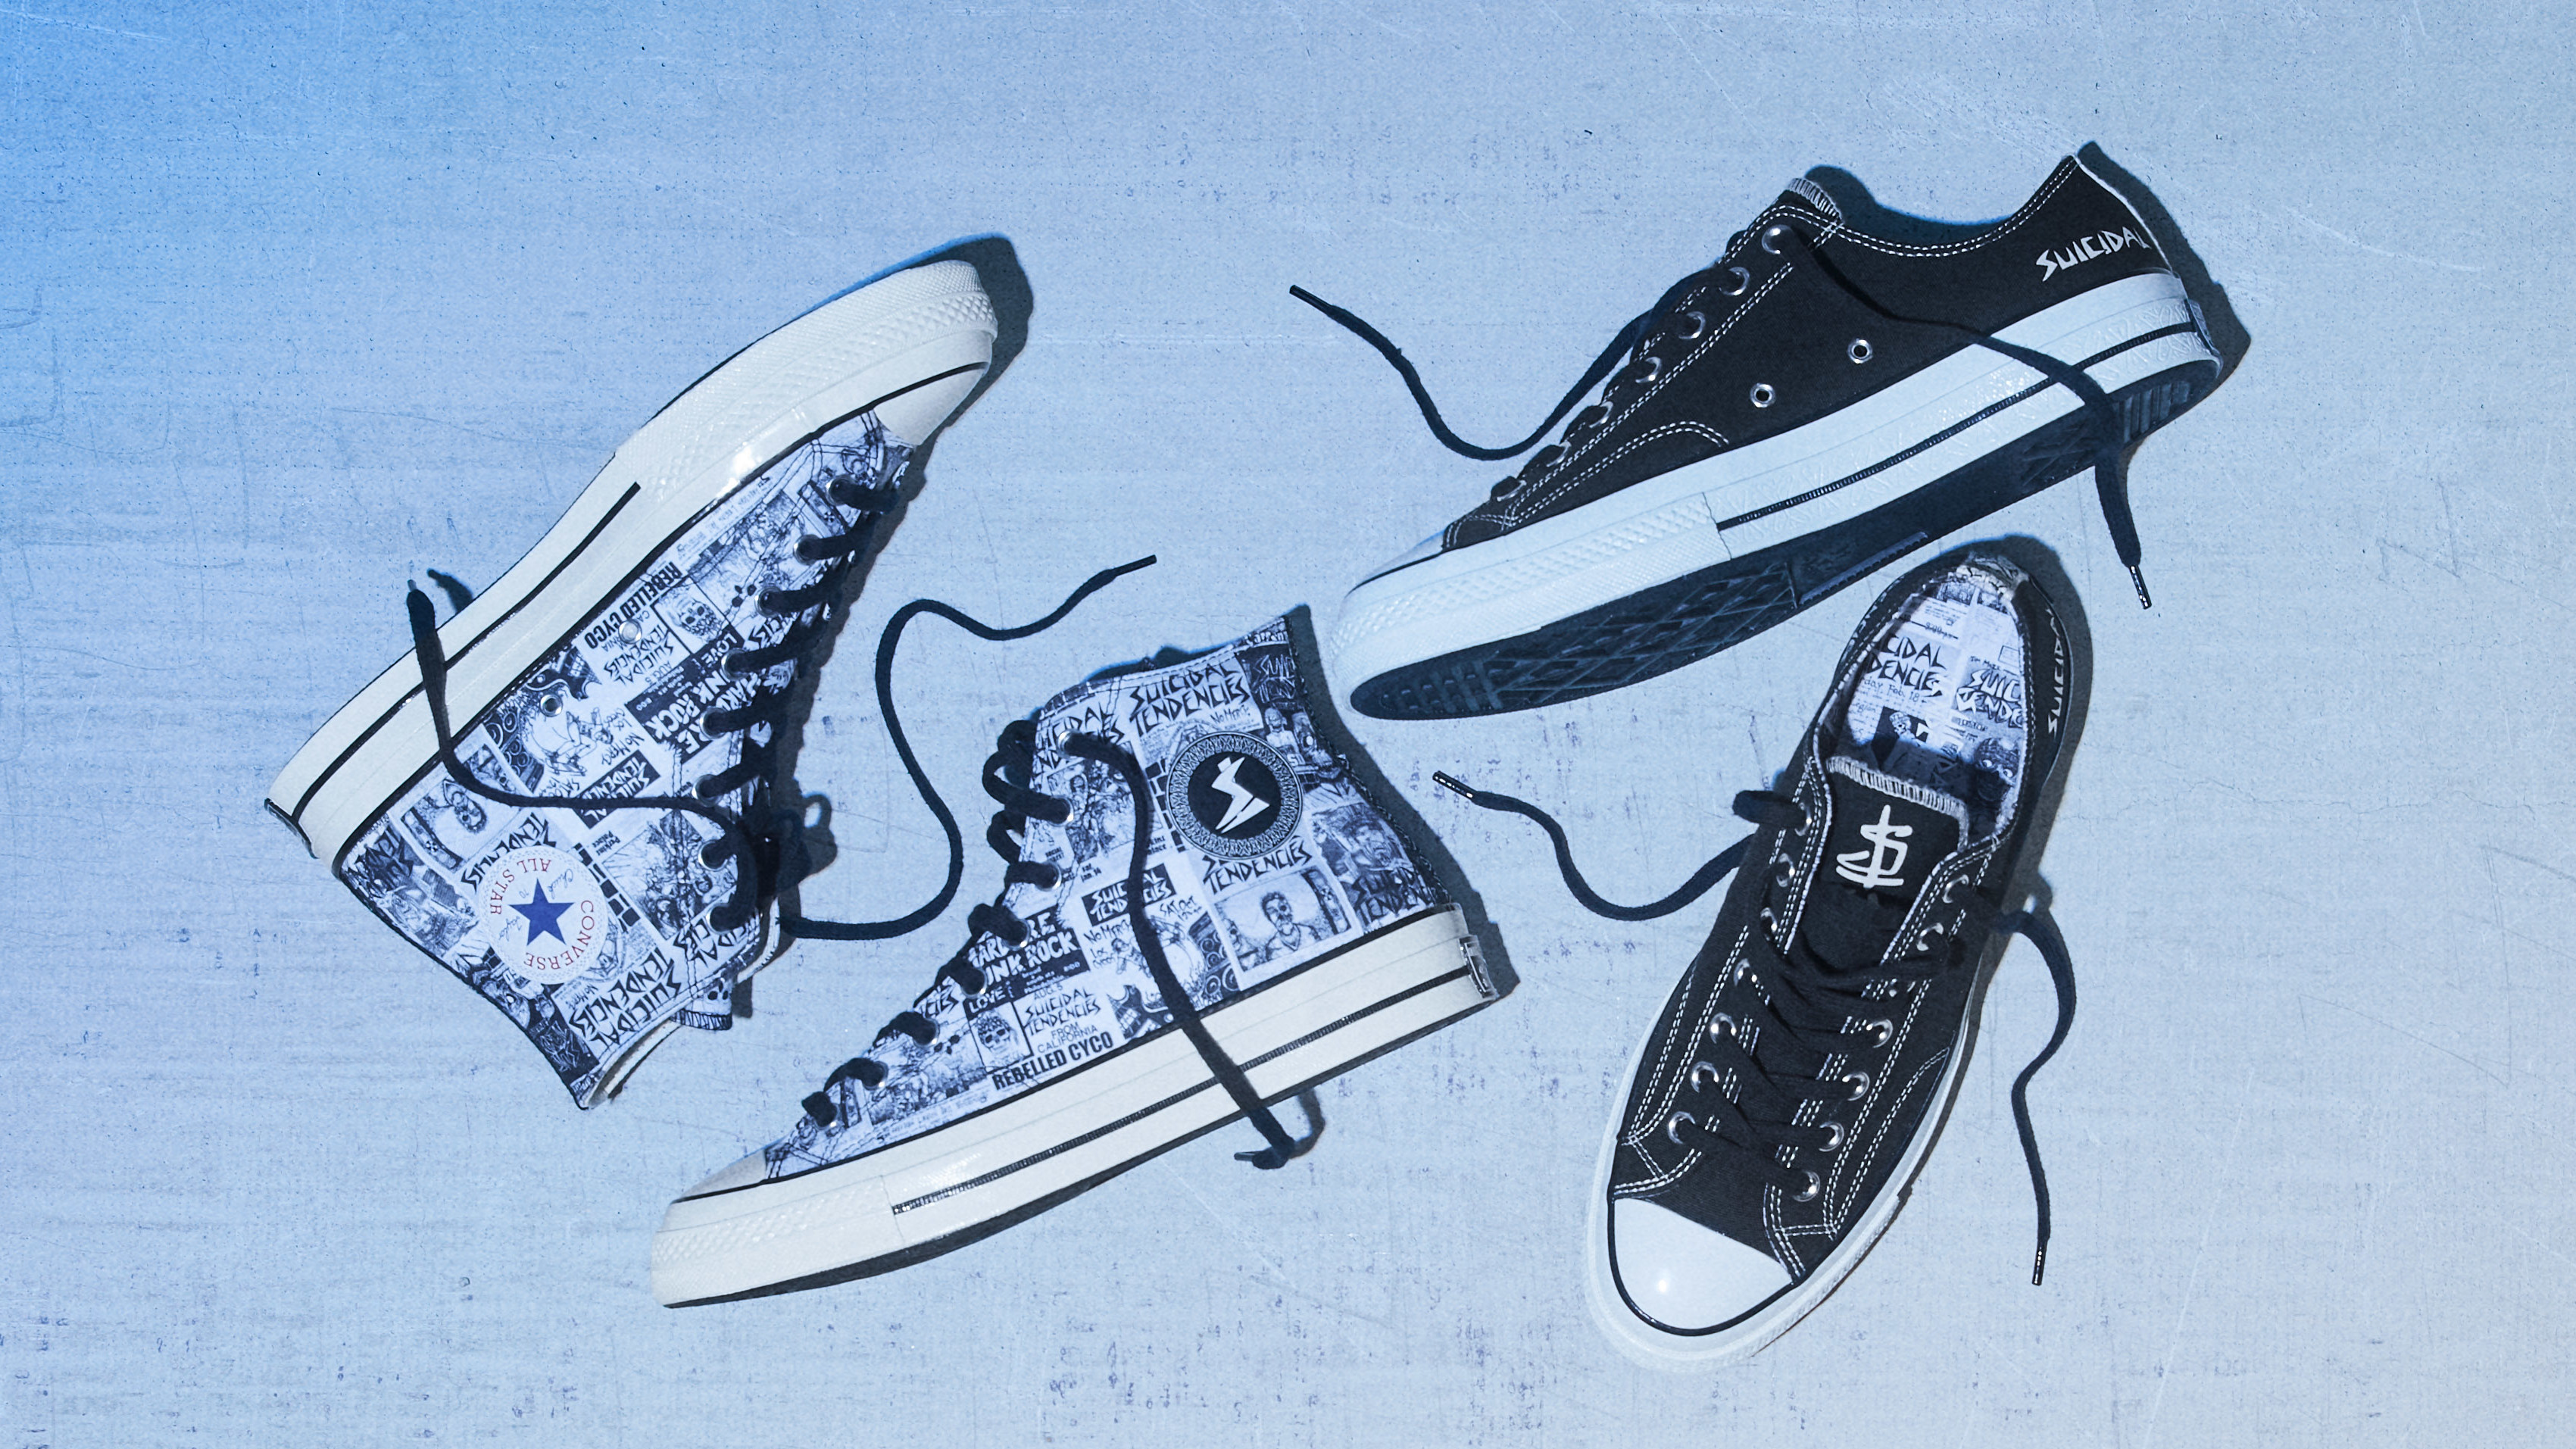 ec5cefdf0bebab Suicidal Tendencies x Converse Chuck 70 Hi and Low Release Date ...